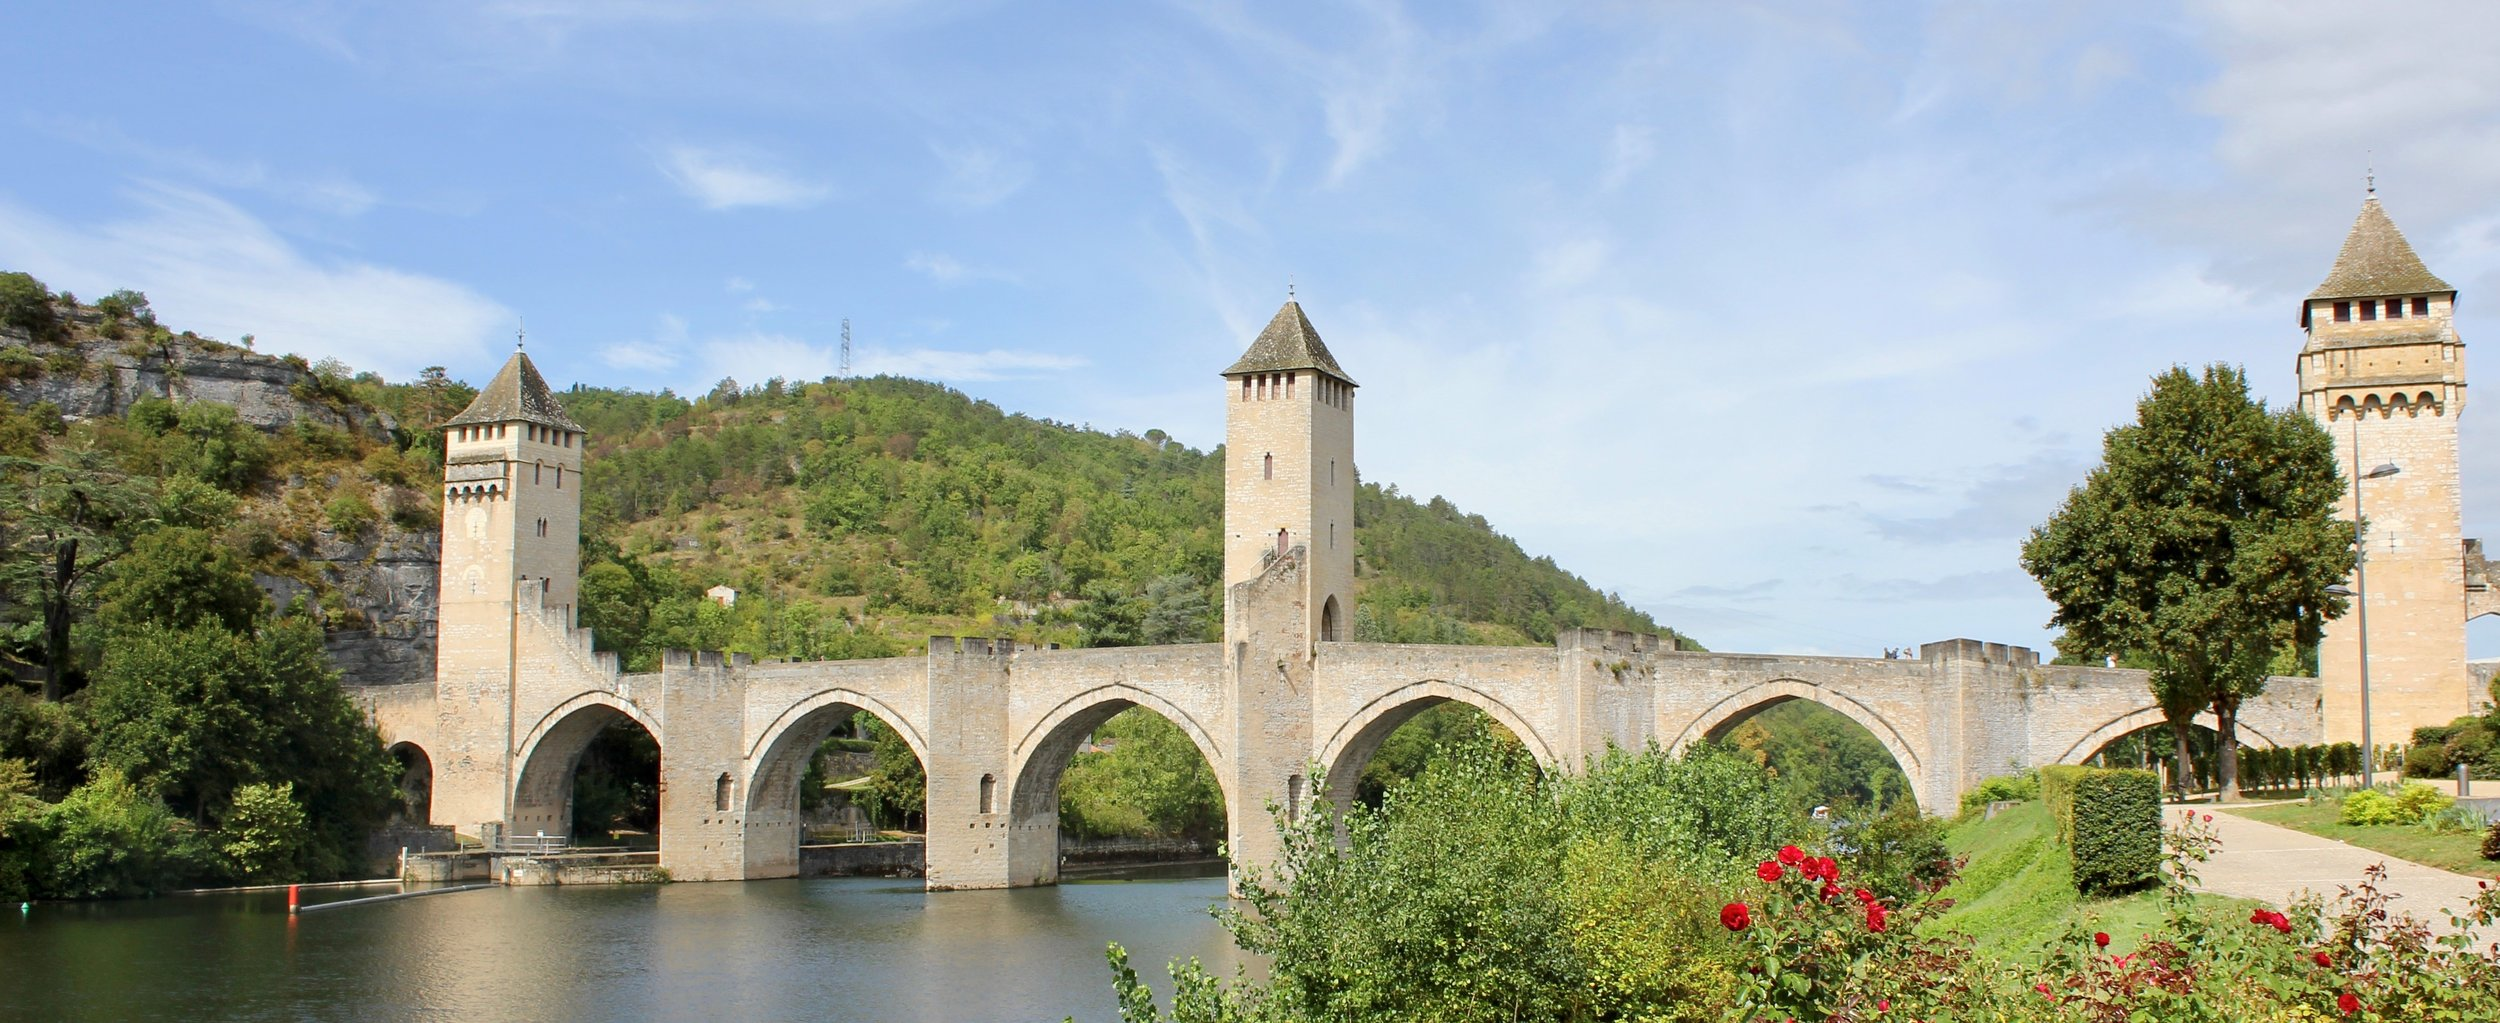 Pont Valentre bridge outside the town of Cahors